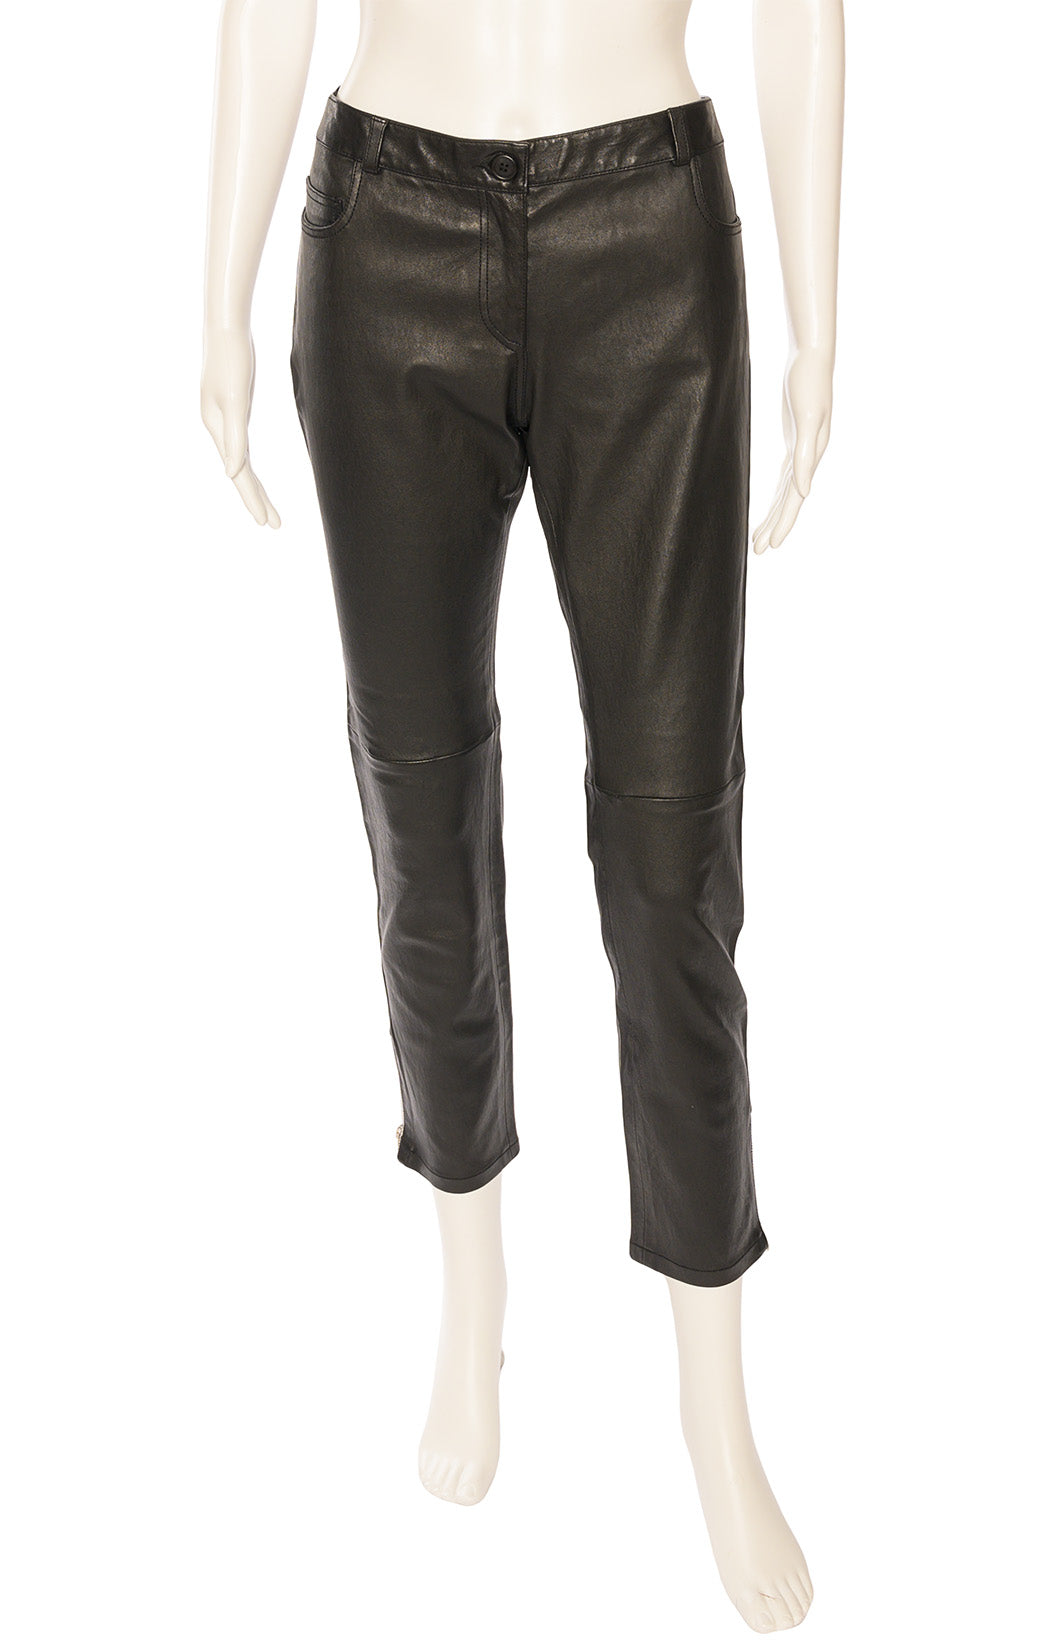 Black leather five-pocket style pant with silver zippers at hemline